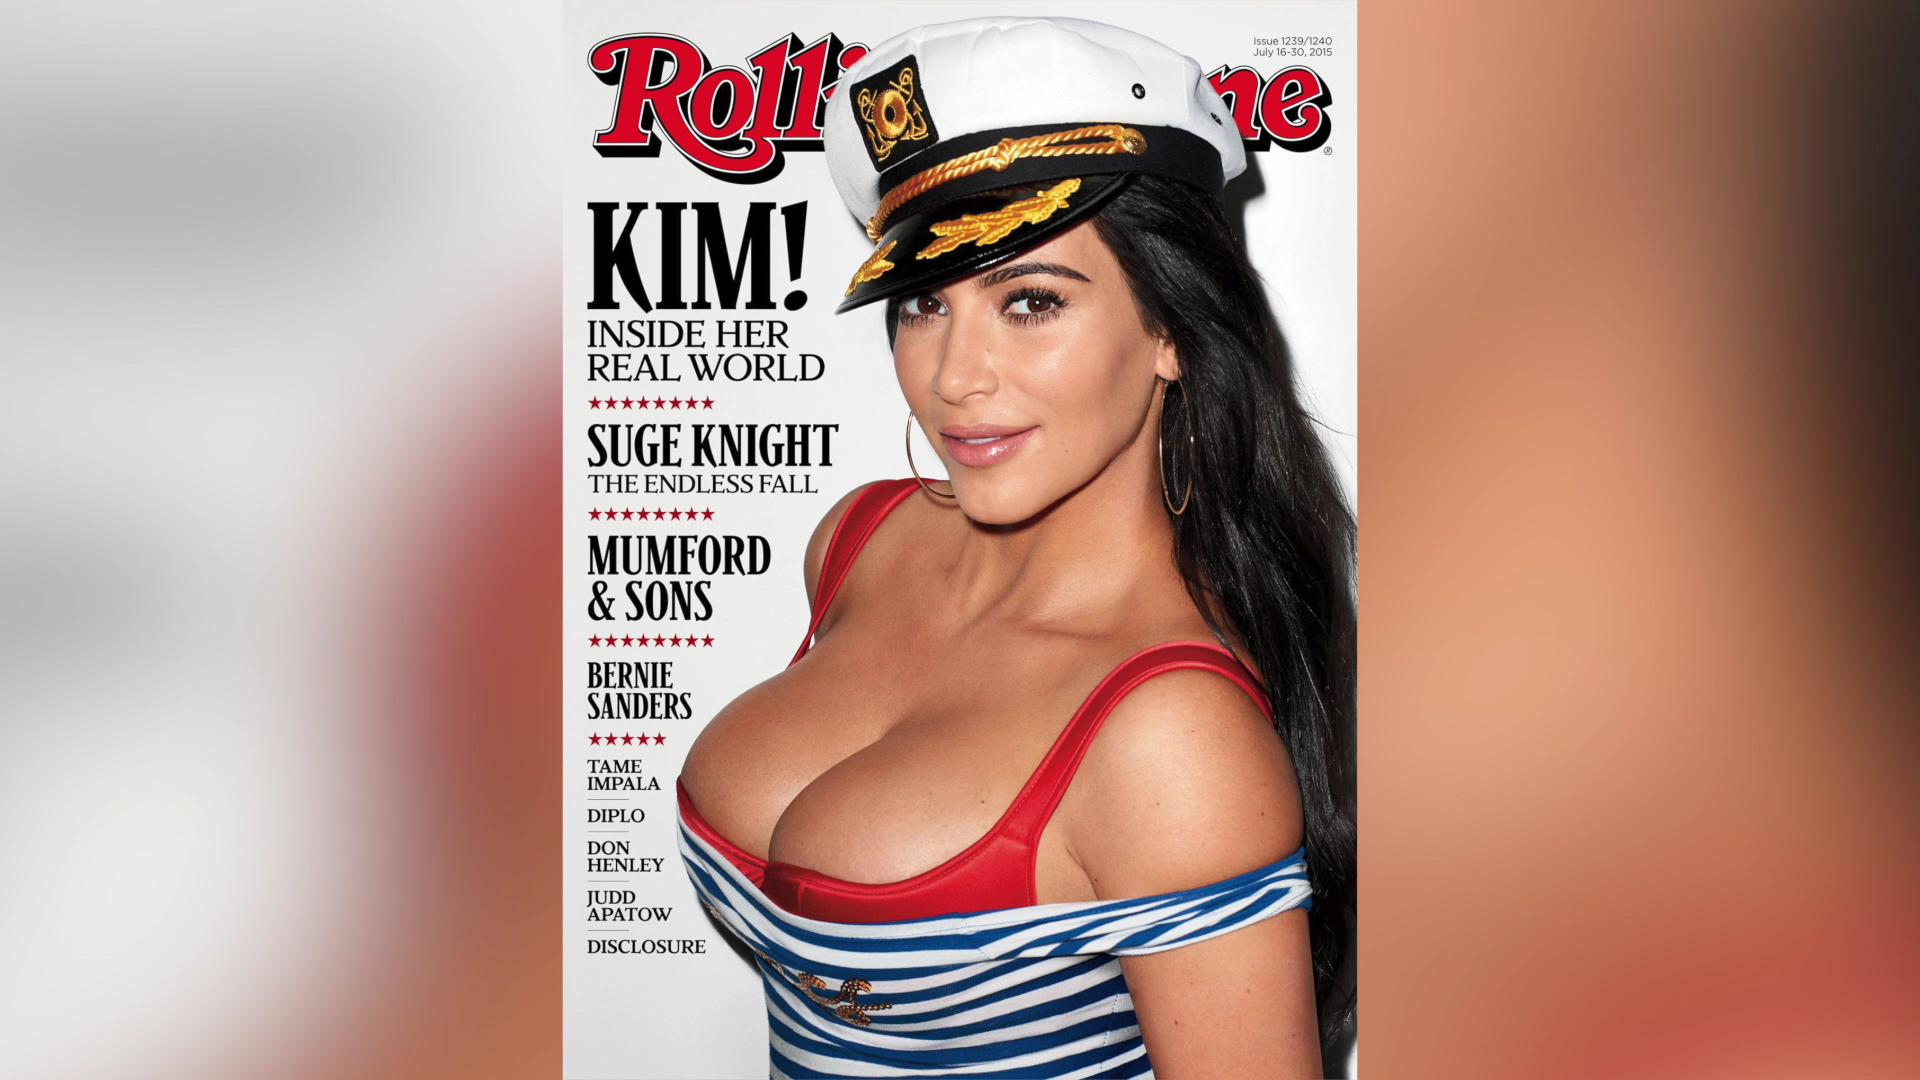 Kim K Rolling Stone cover has Sinead O'Connor calling for boycott